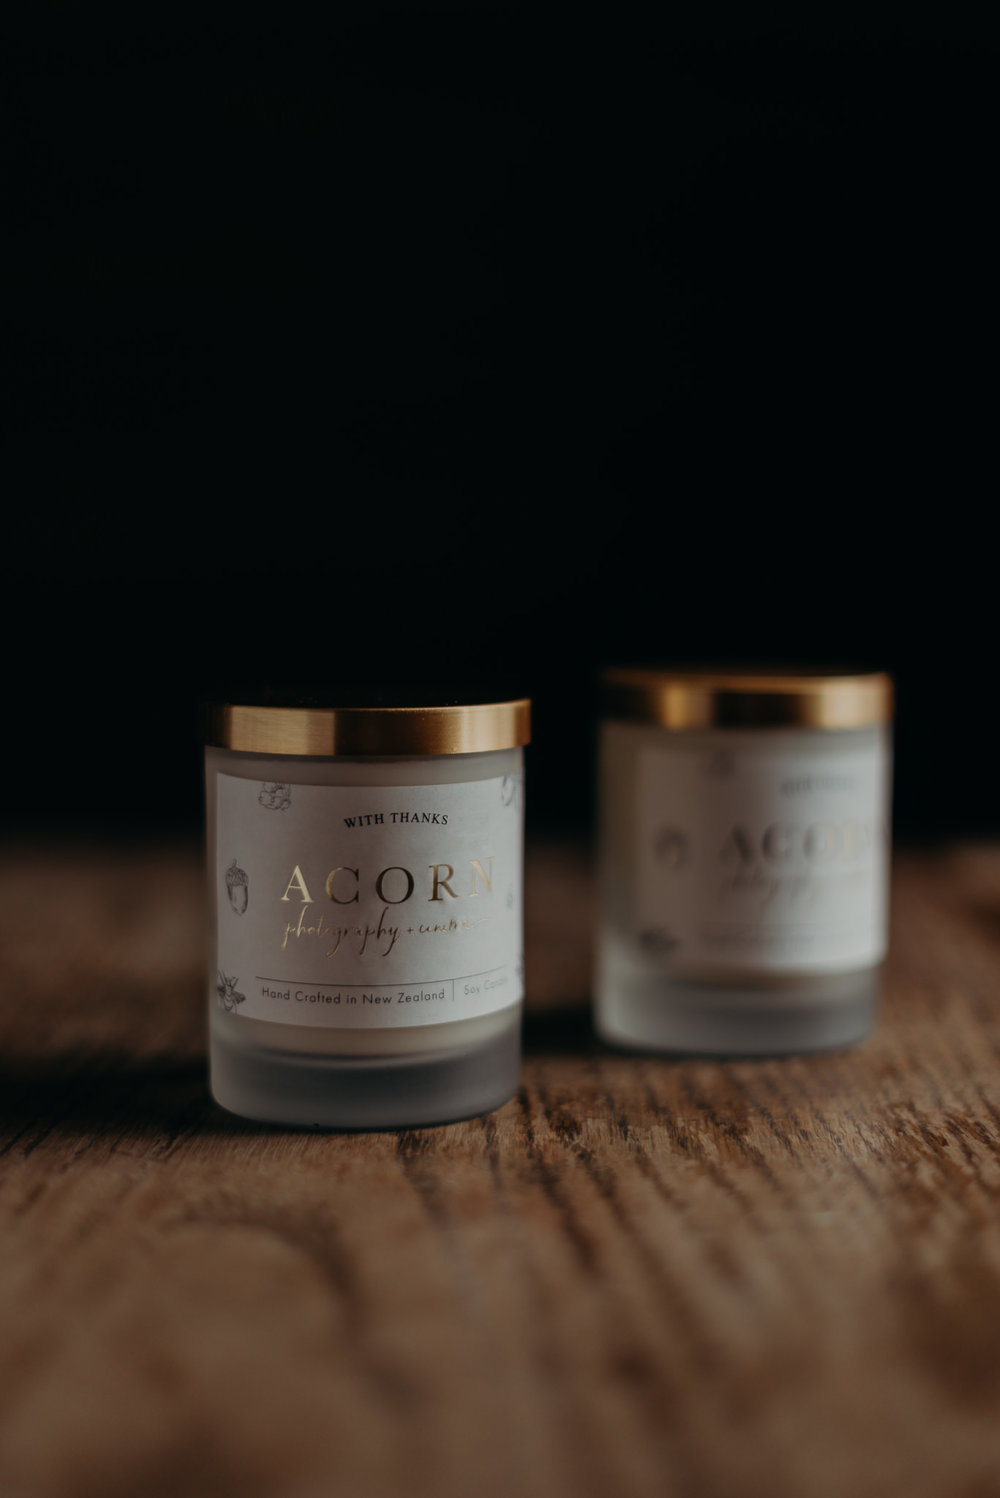 Handmade+soy+candles+-+Acorn+Photography+&+Cinema+Branding+and+packaging.+New+Zealand+Wedding+Photographer._-10.jpeg